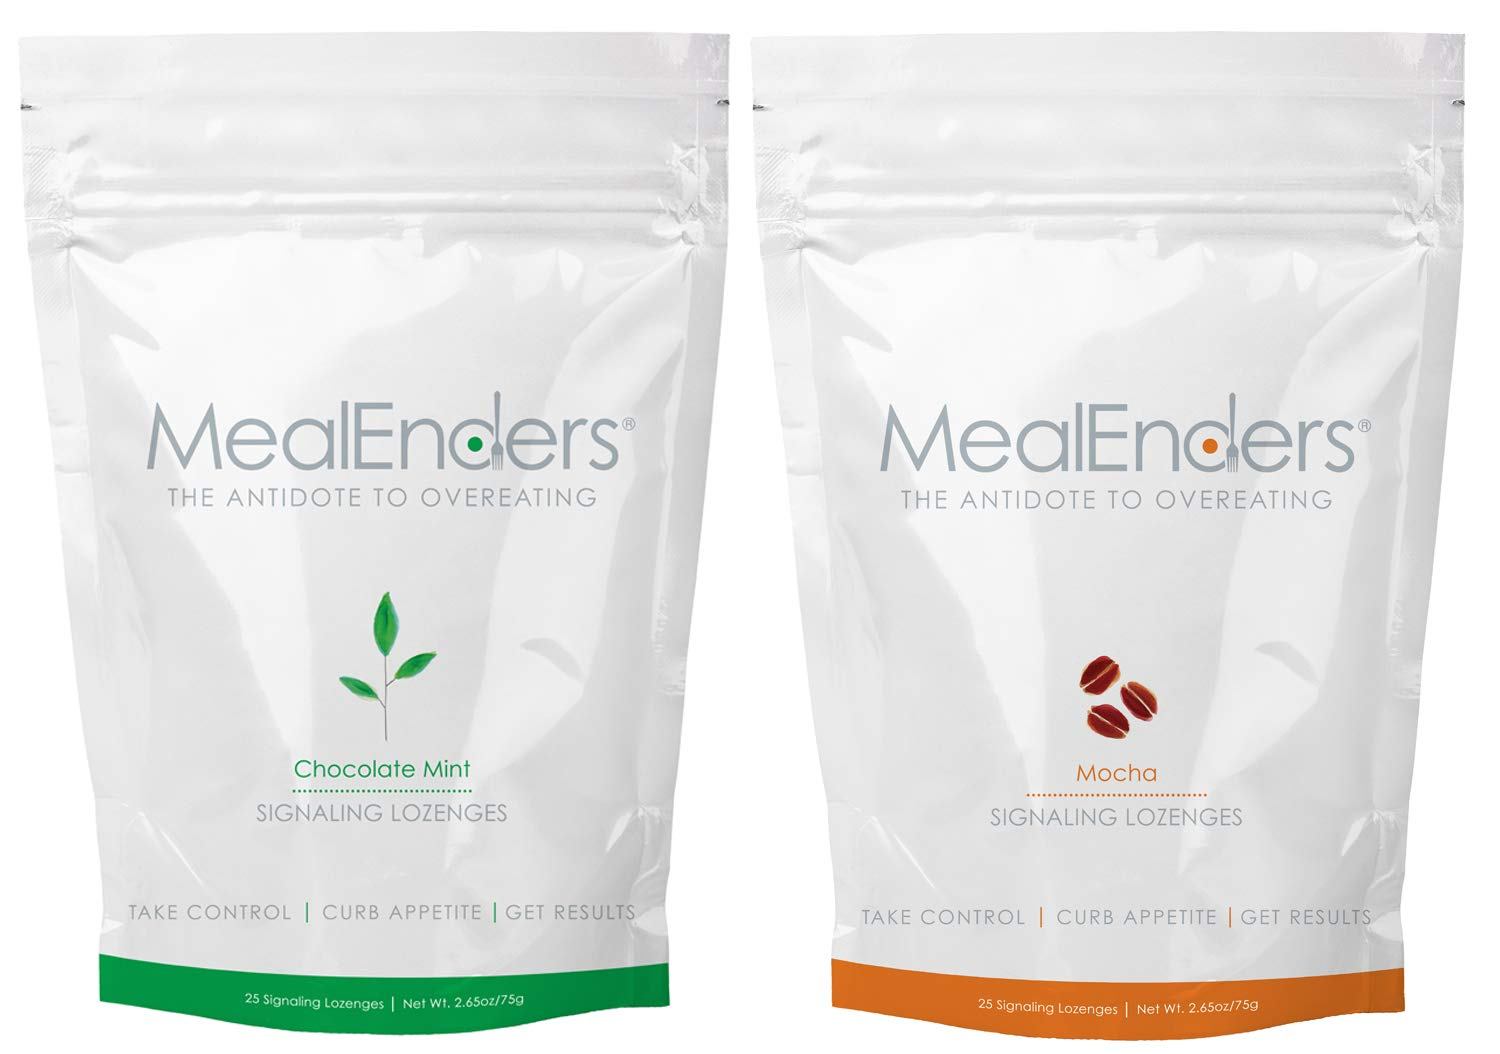 MealEnders Signaling Lozenges - Control Appetite and Cravings, Stop Overeating, and Boost Your Diet Weight Loss Program, 25-Count Bag (2-Pack) (1x Choc.Mint 1x Mocha)